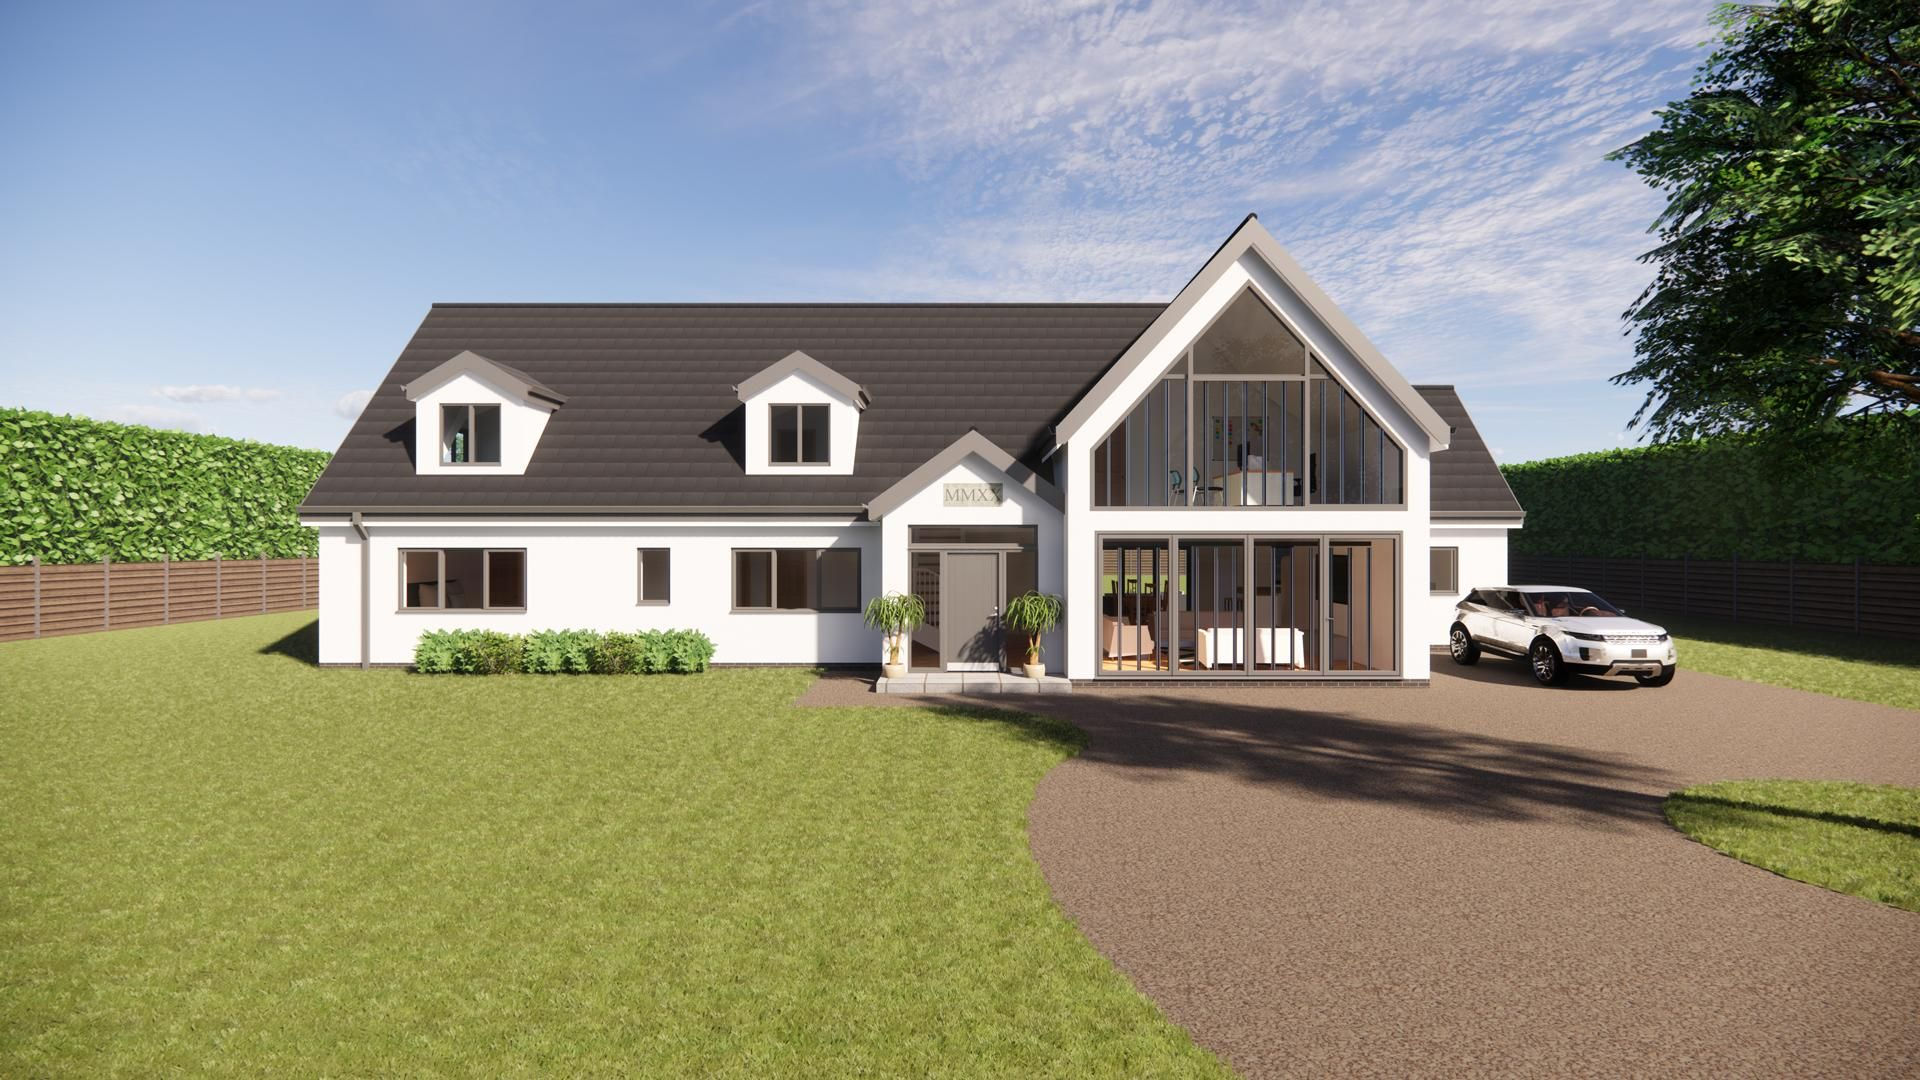 New to our range of large dormer bungalow designs, a spacious five-bedroomed dwelling with open plan living on the Ground Floor. Click the link to find out more.